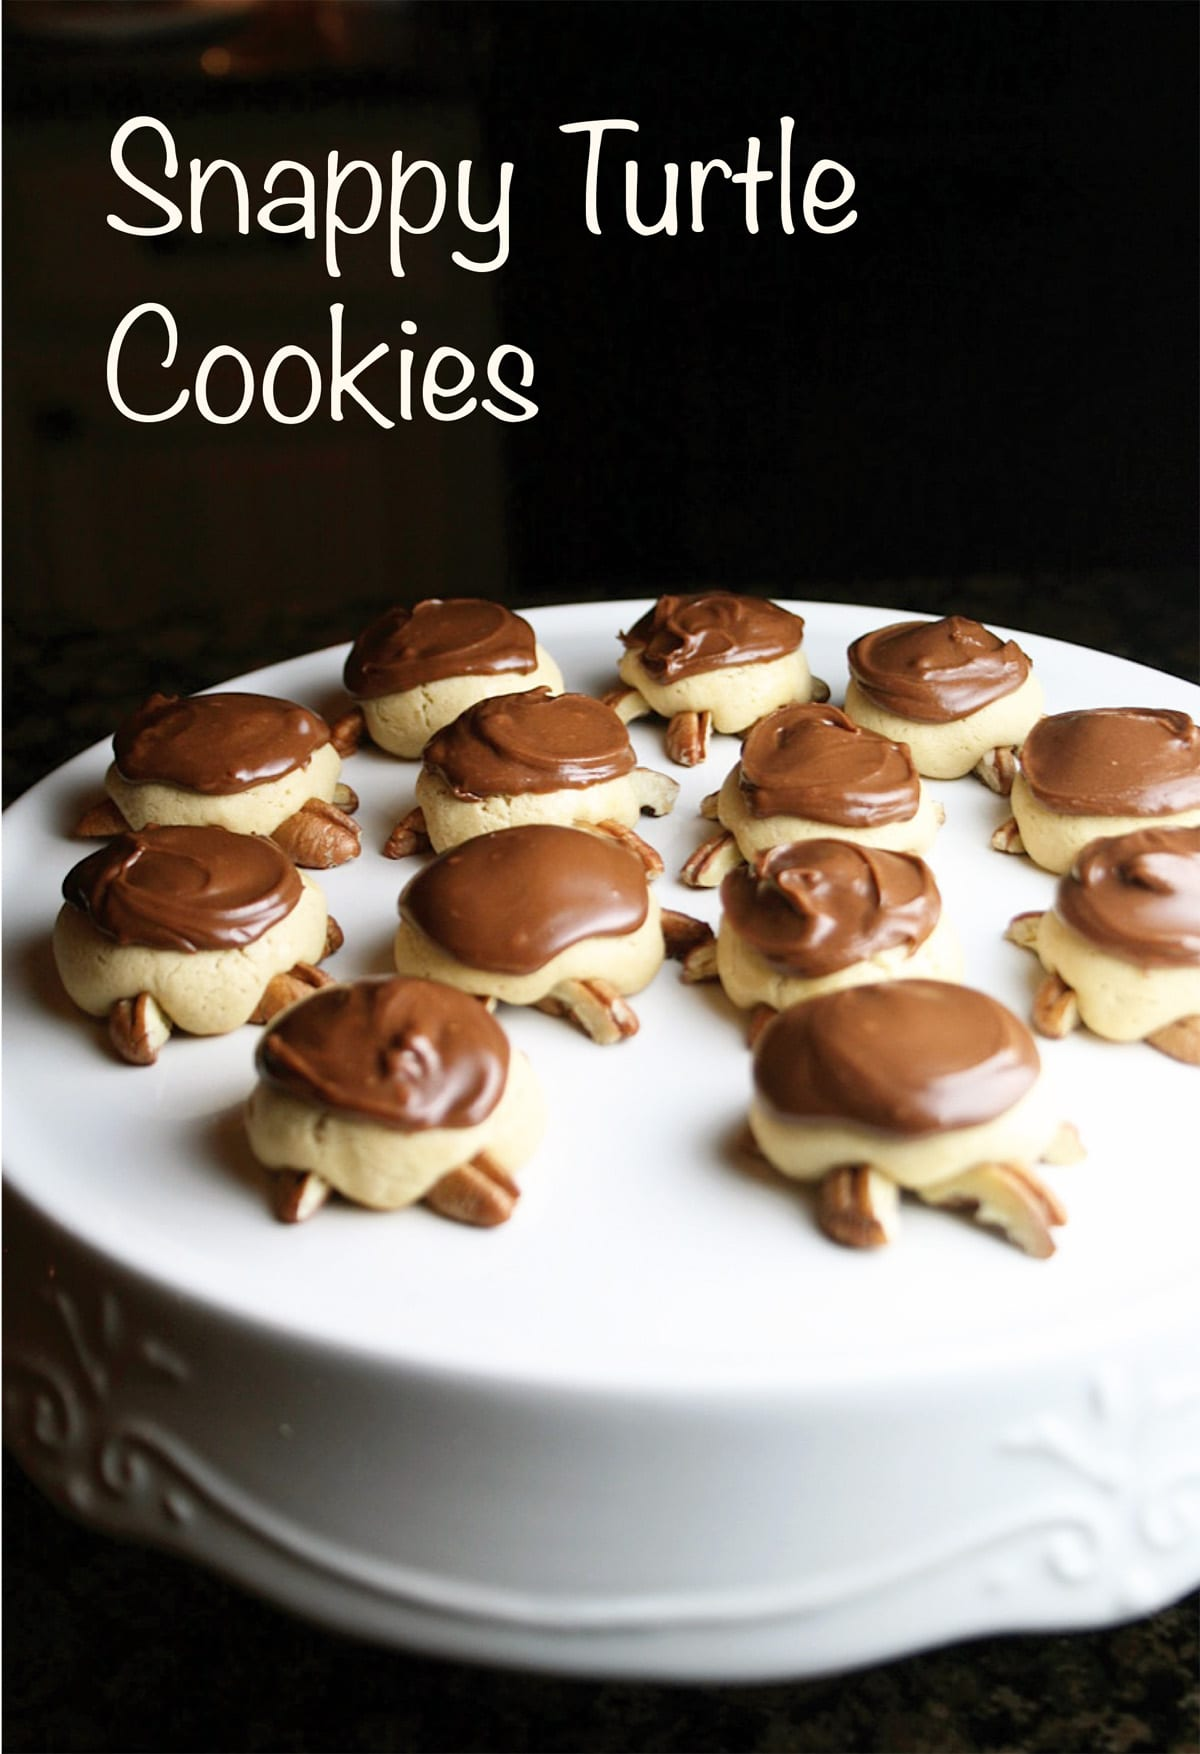 Snappy Turtle Cookies are turtle shaped sugar cookies with pecans and ...